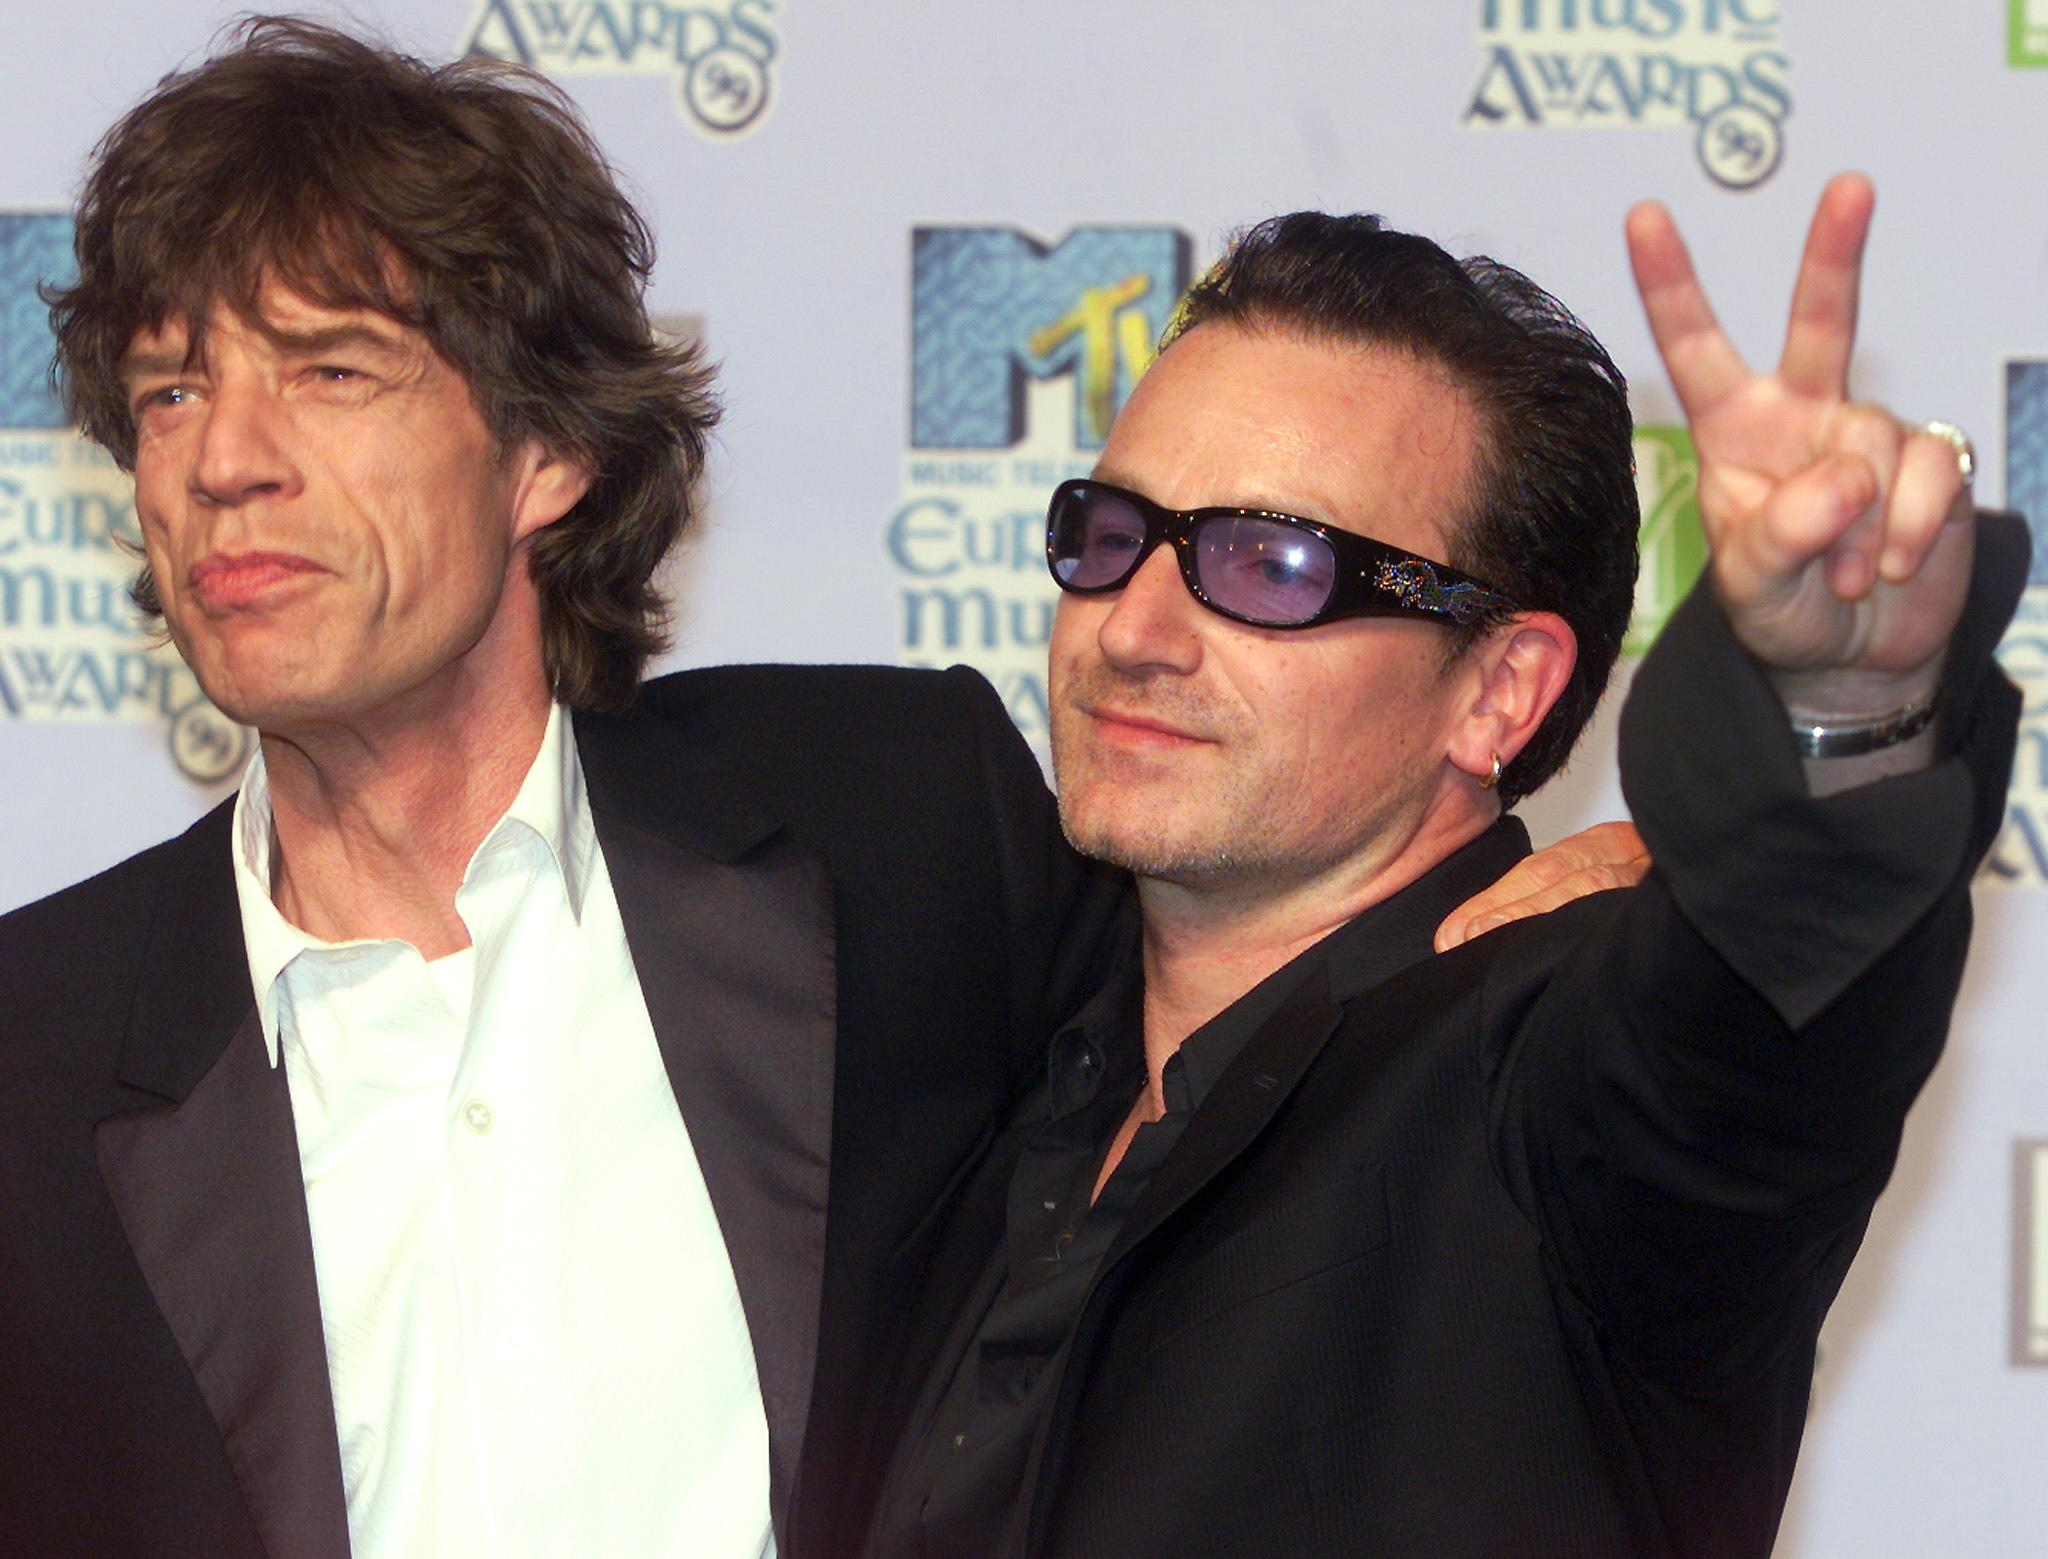 Mike Jagger (L) and Bono, the lead singer of Irish group U2 in 1999